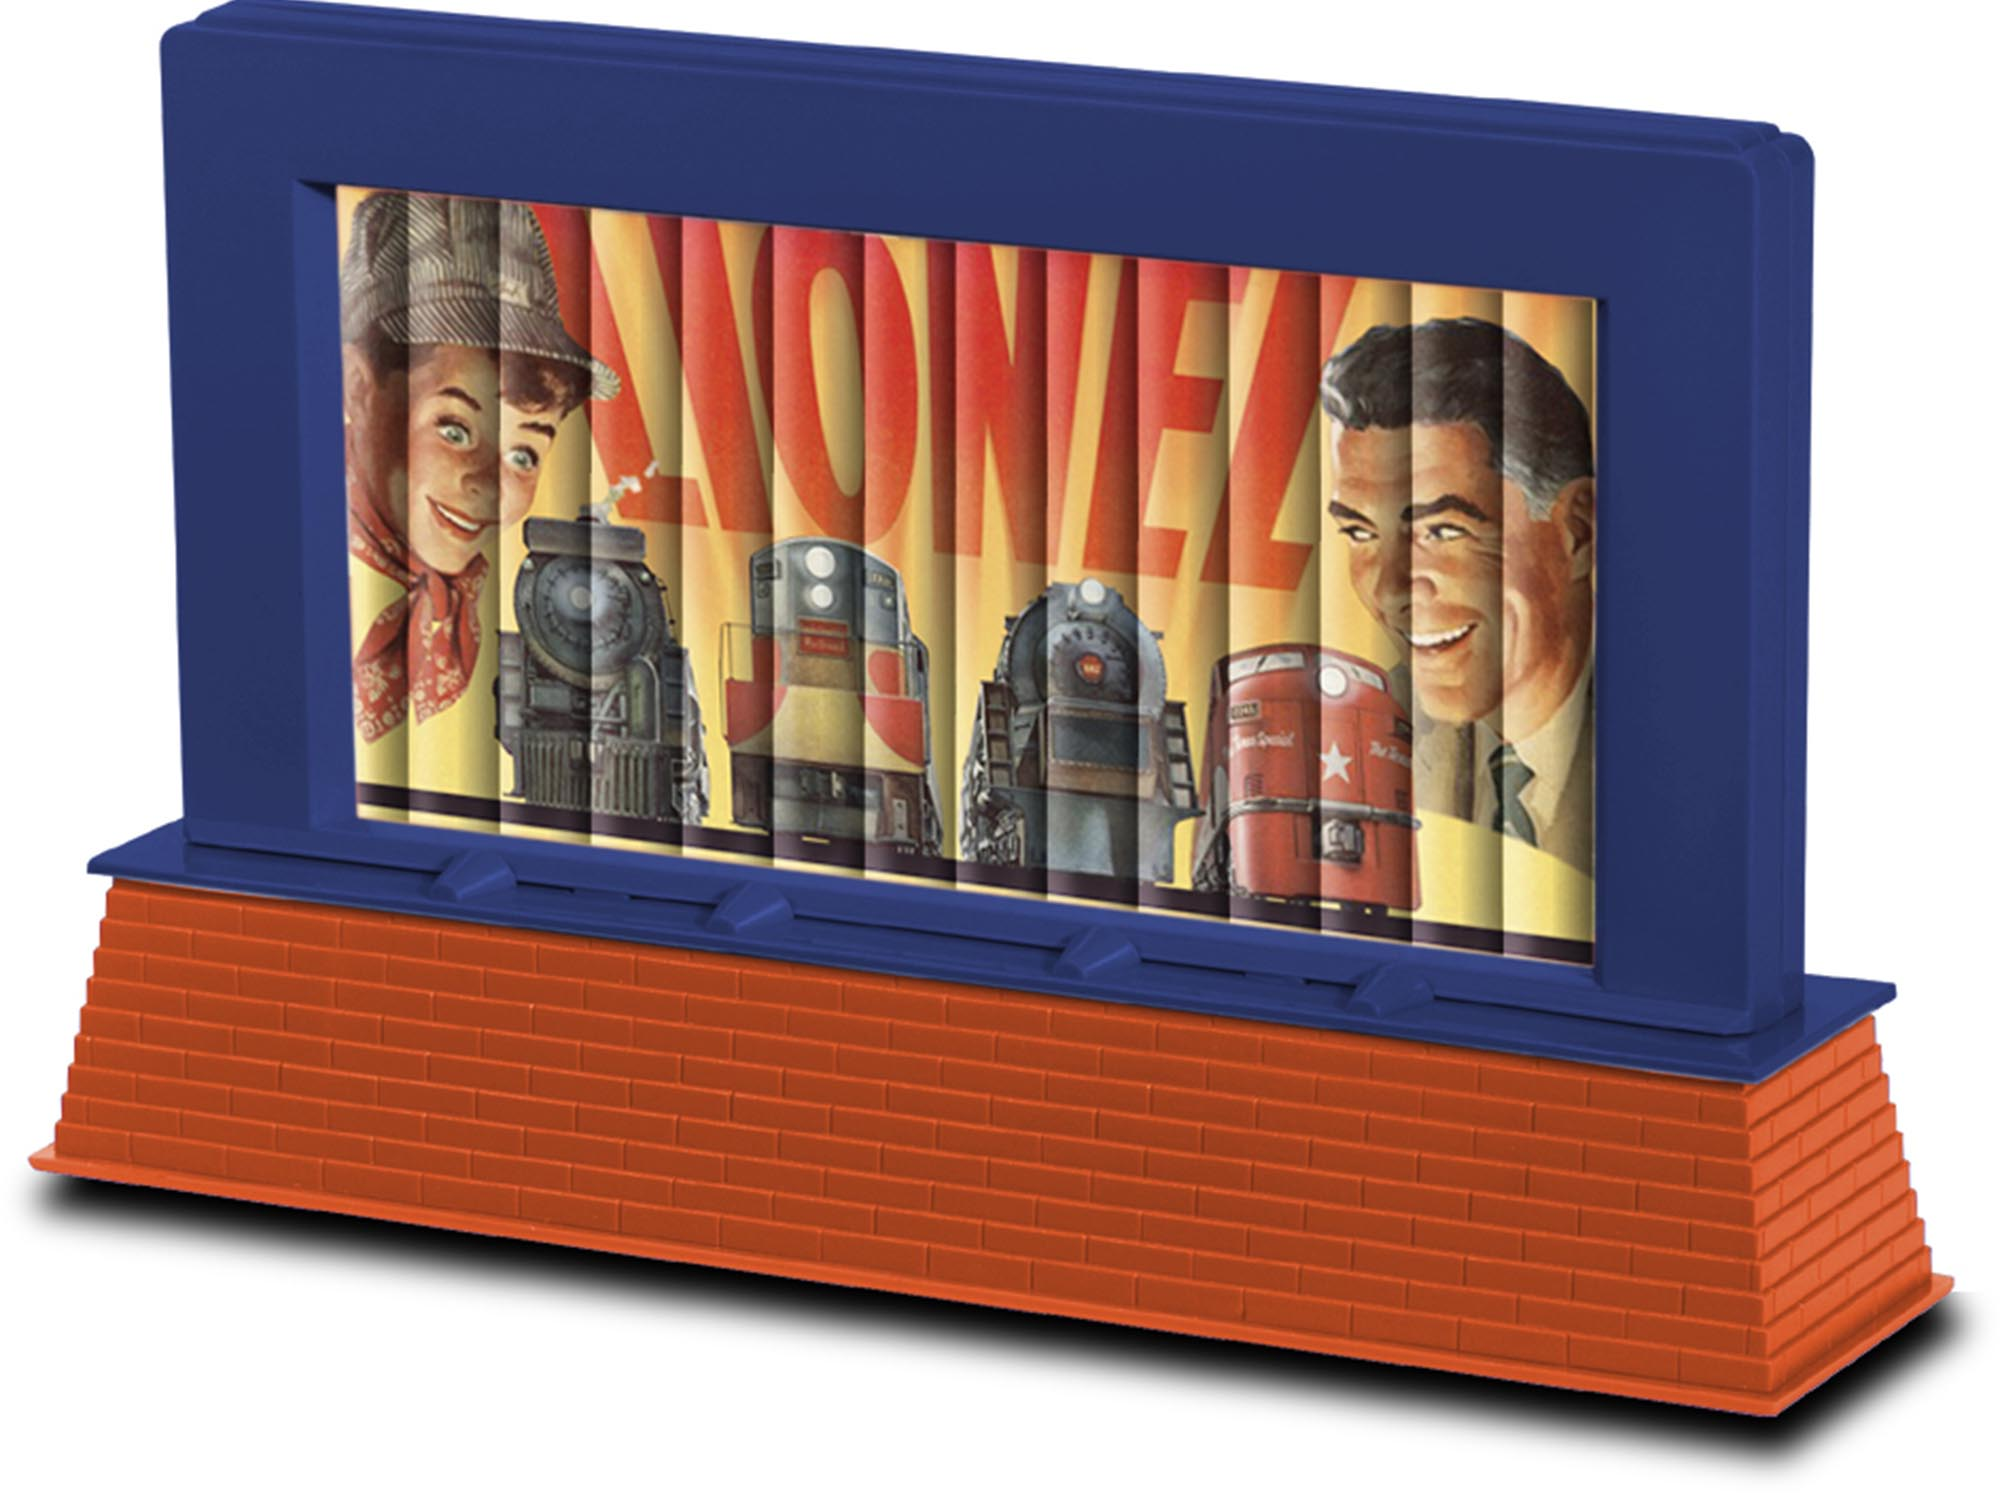 6-82017 LIONEL ART OPERATING BILLBOARD